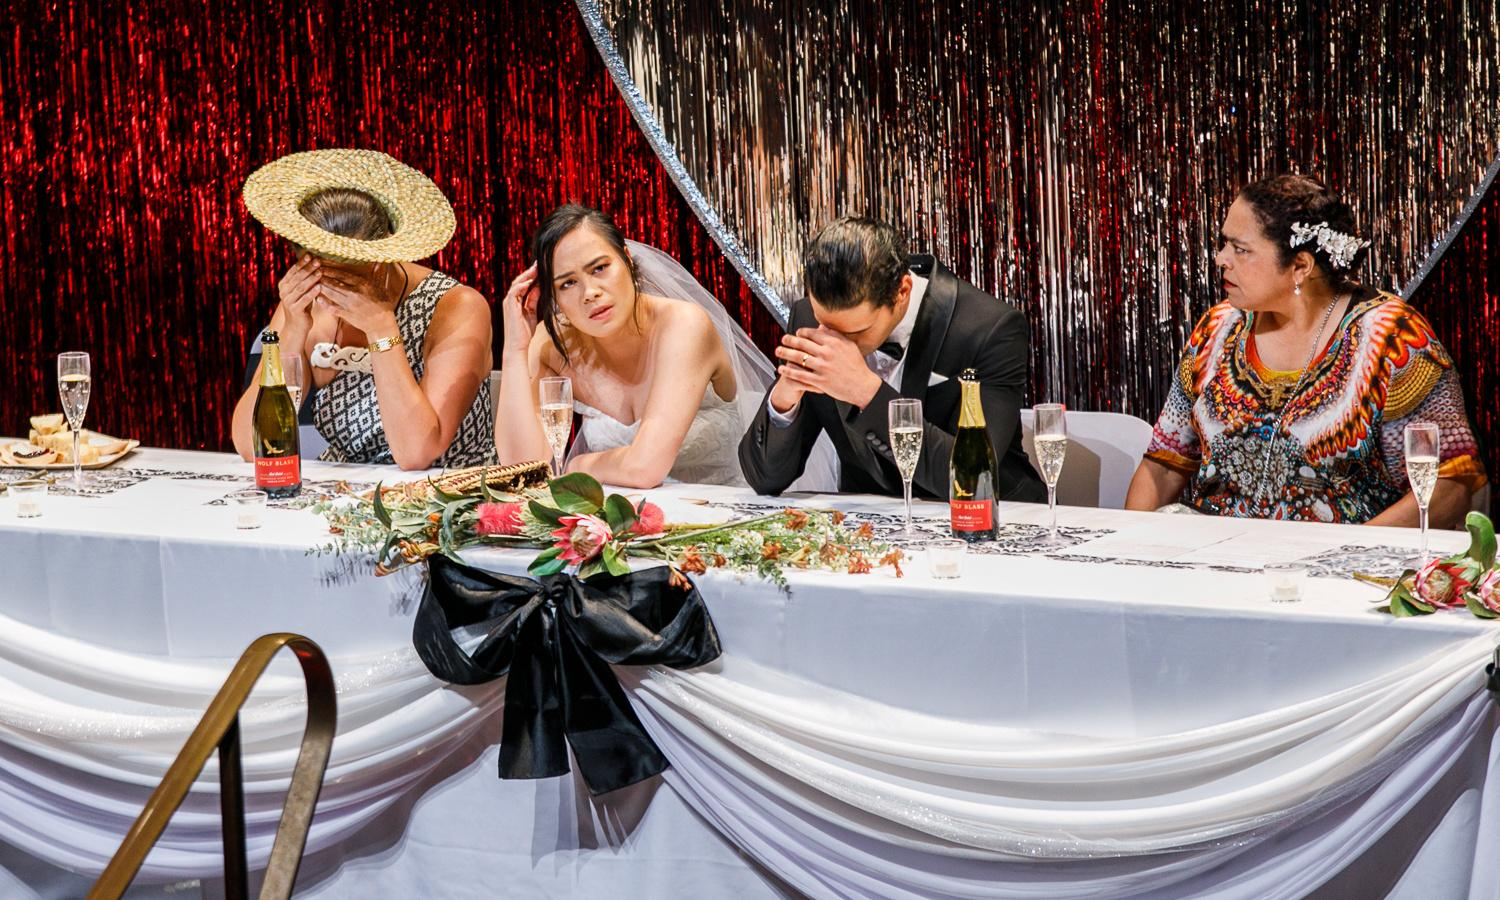 Black Ties review – chaos, comedy and cultural clashes in a wedding gone wrong